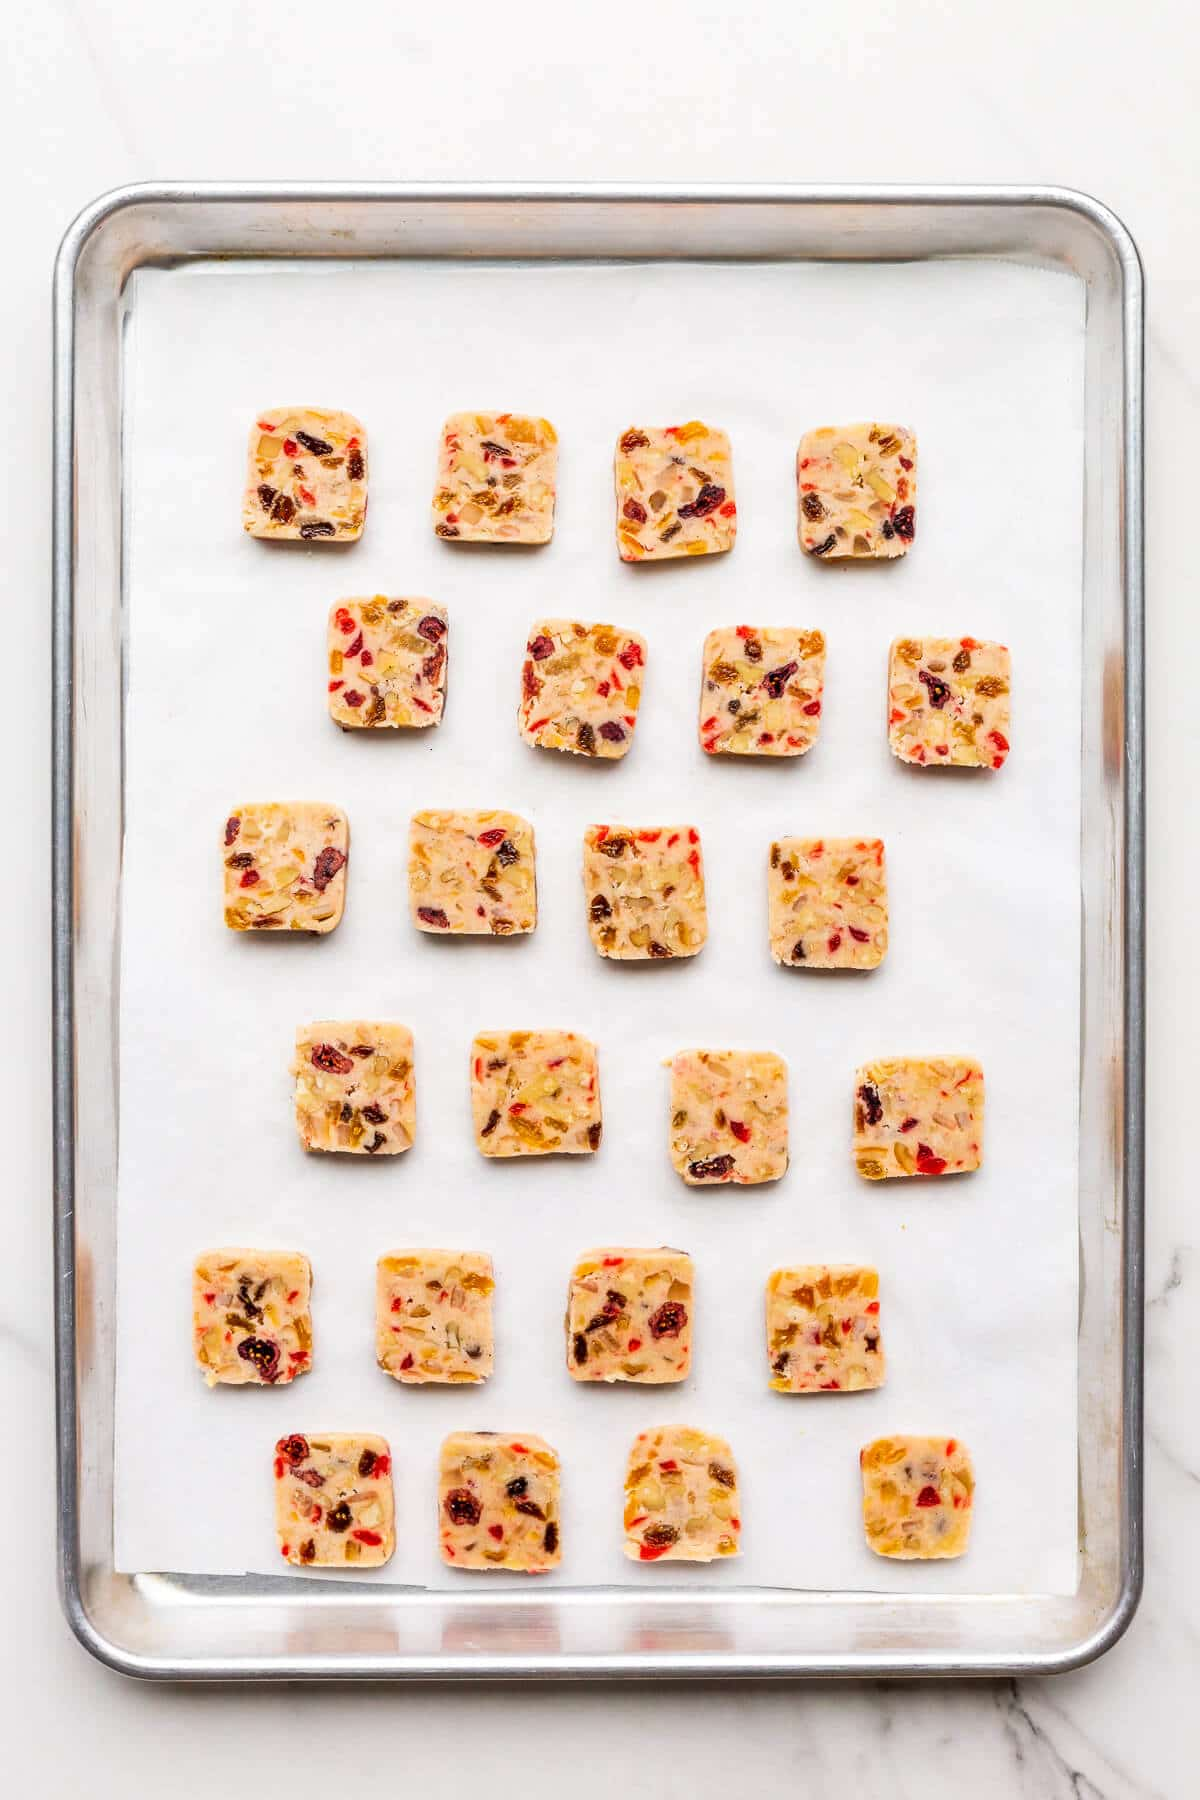 A parchment-lined sheet pan of fruitcake cookies ready to be baked.